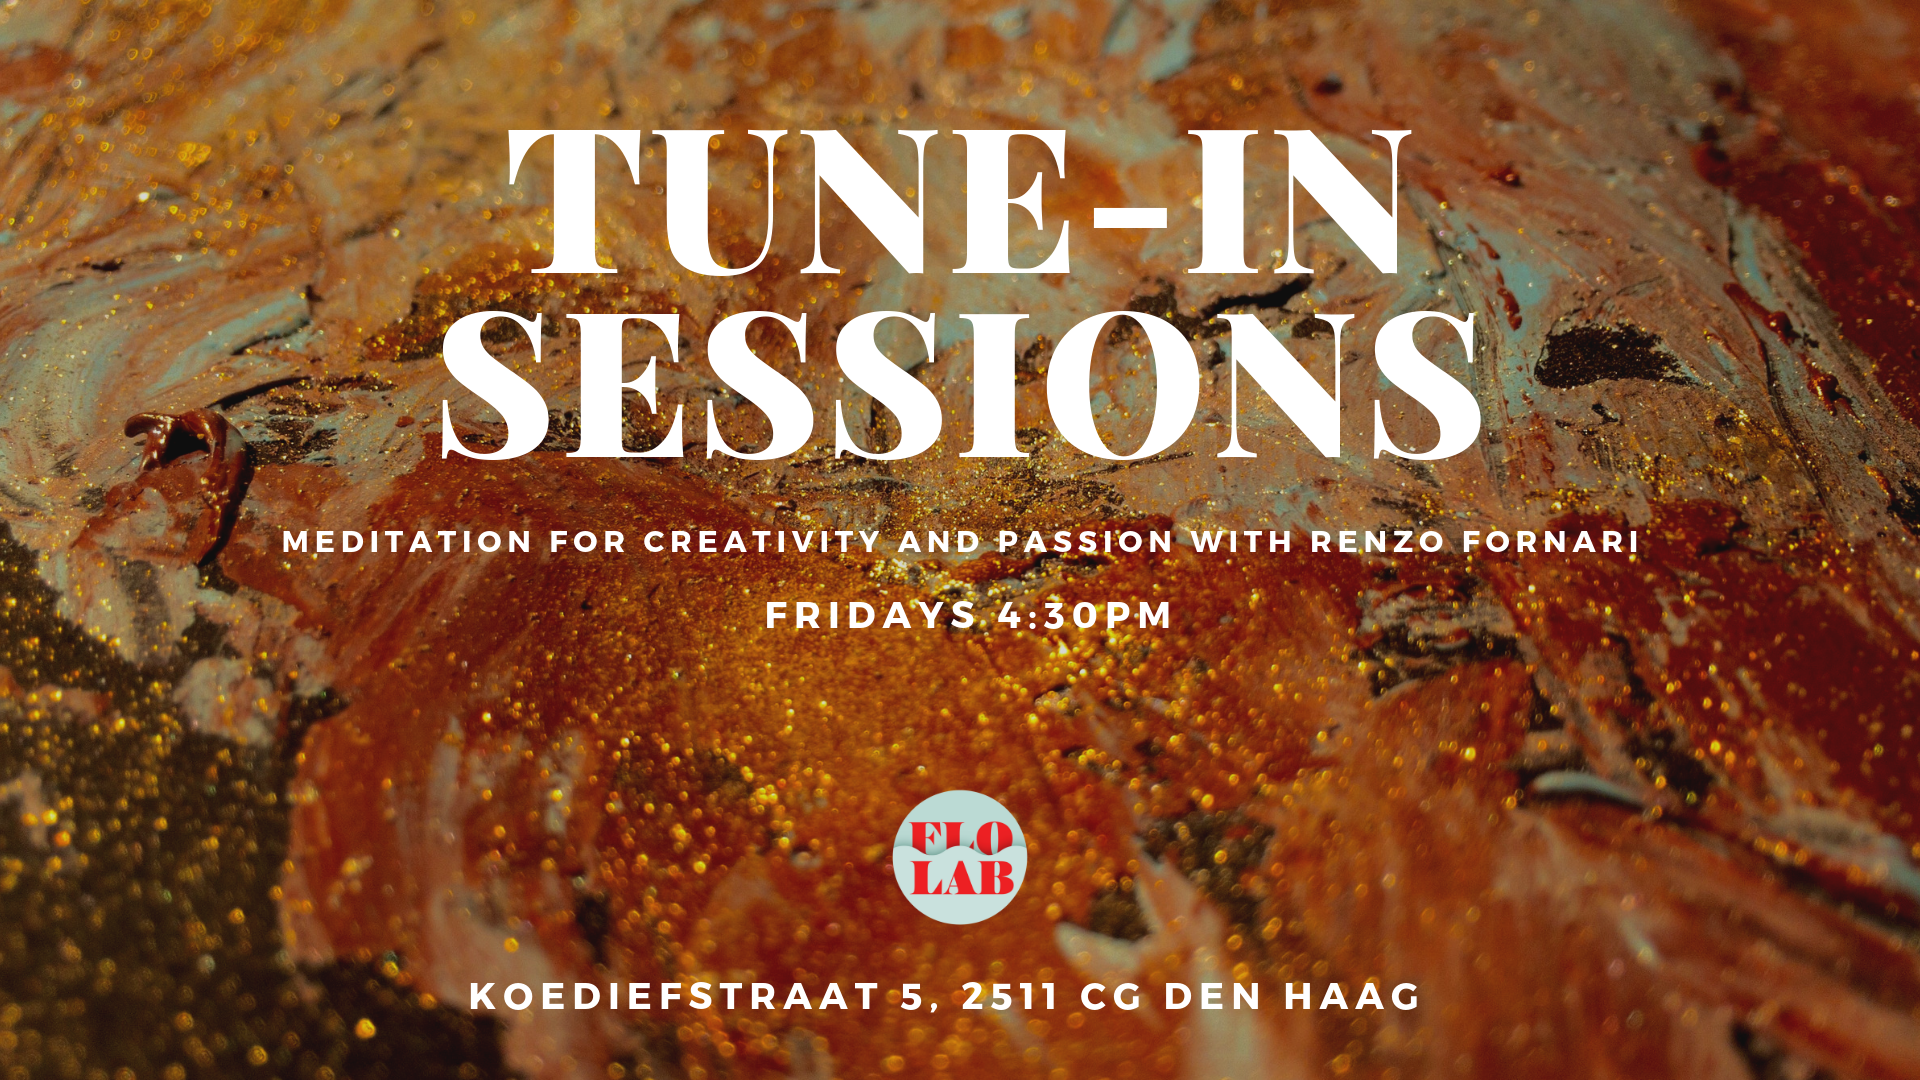 Tune-in sessions facebook cover.png